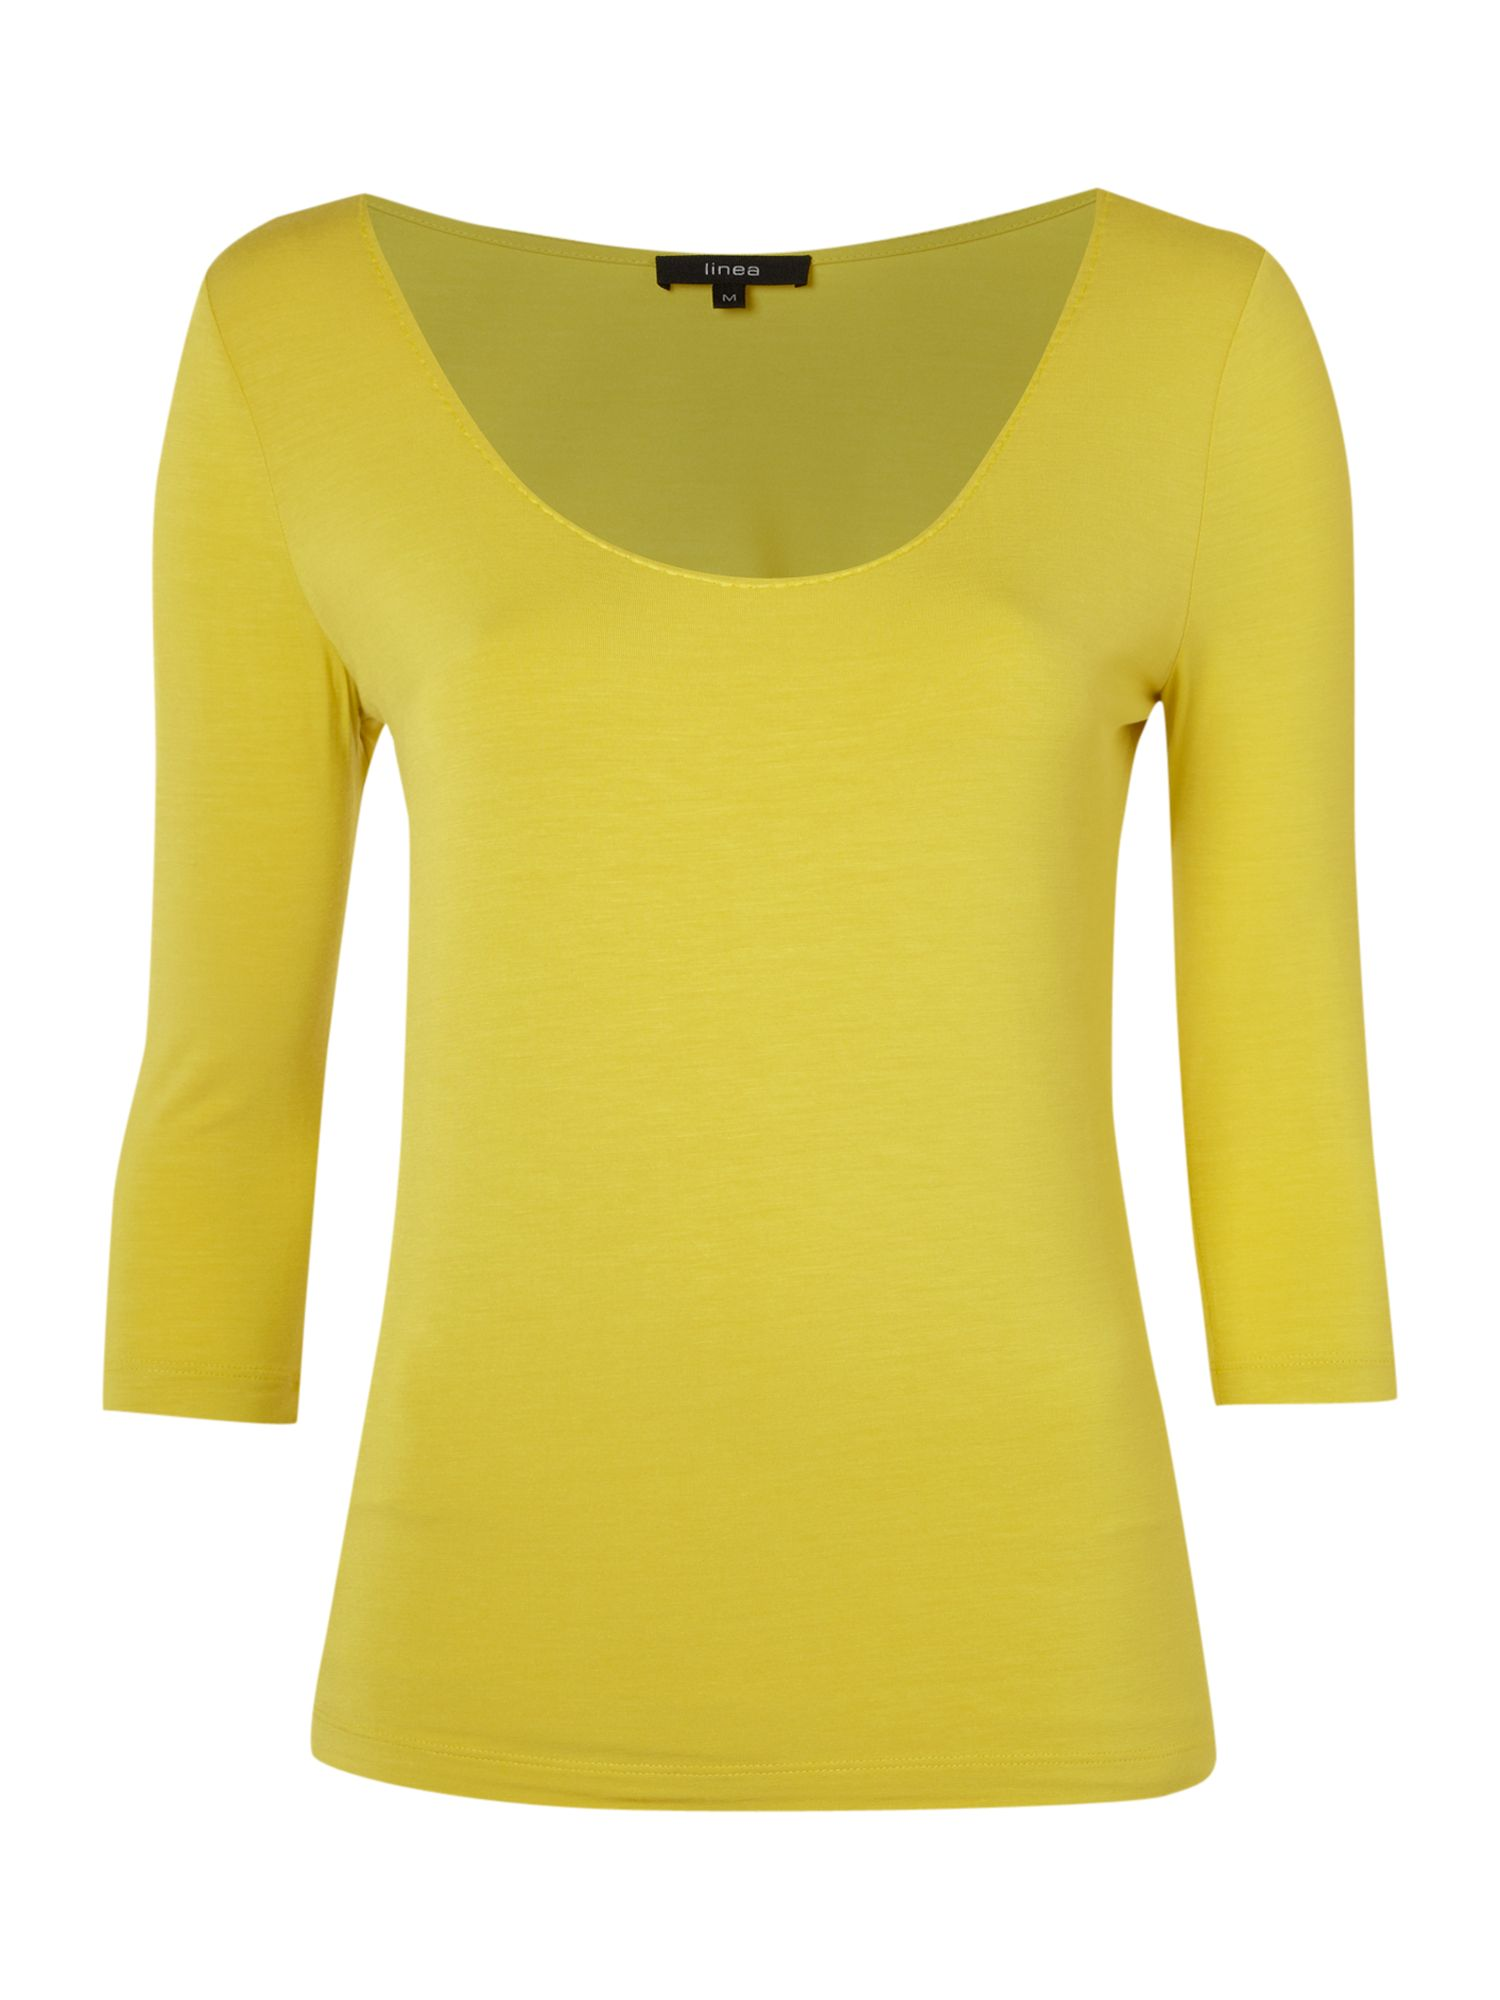 Womens Linea Scoop neck T-shirt, Yellow